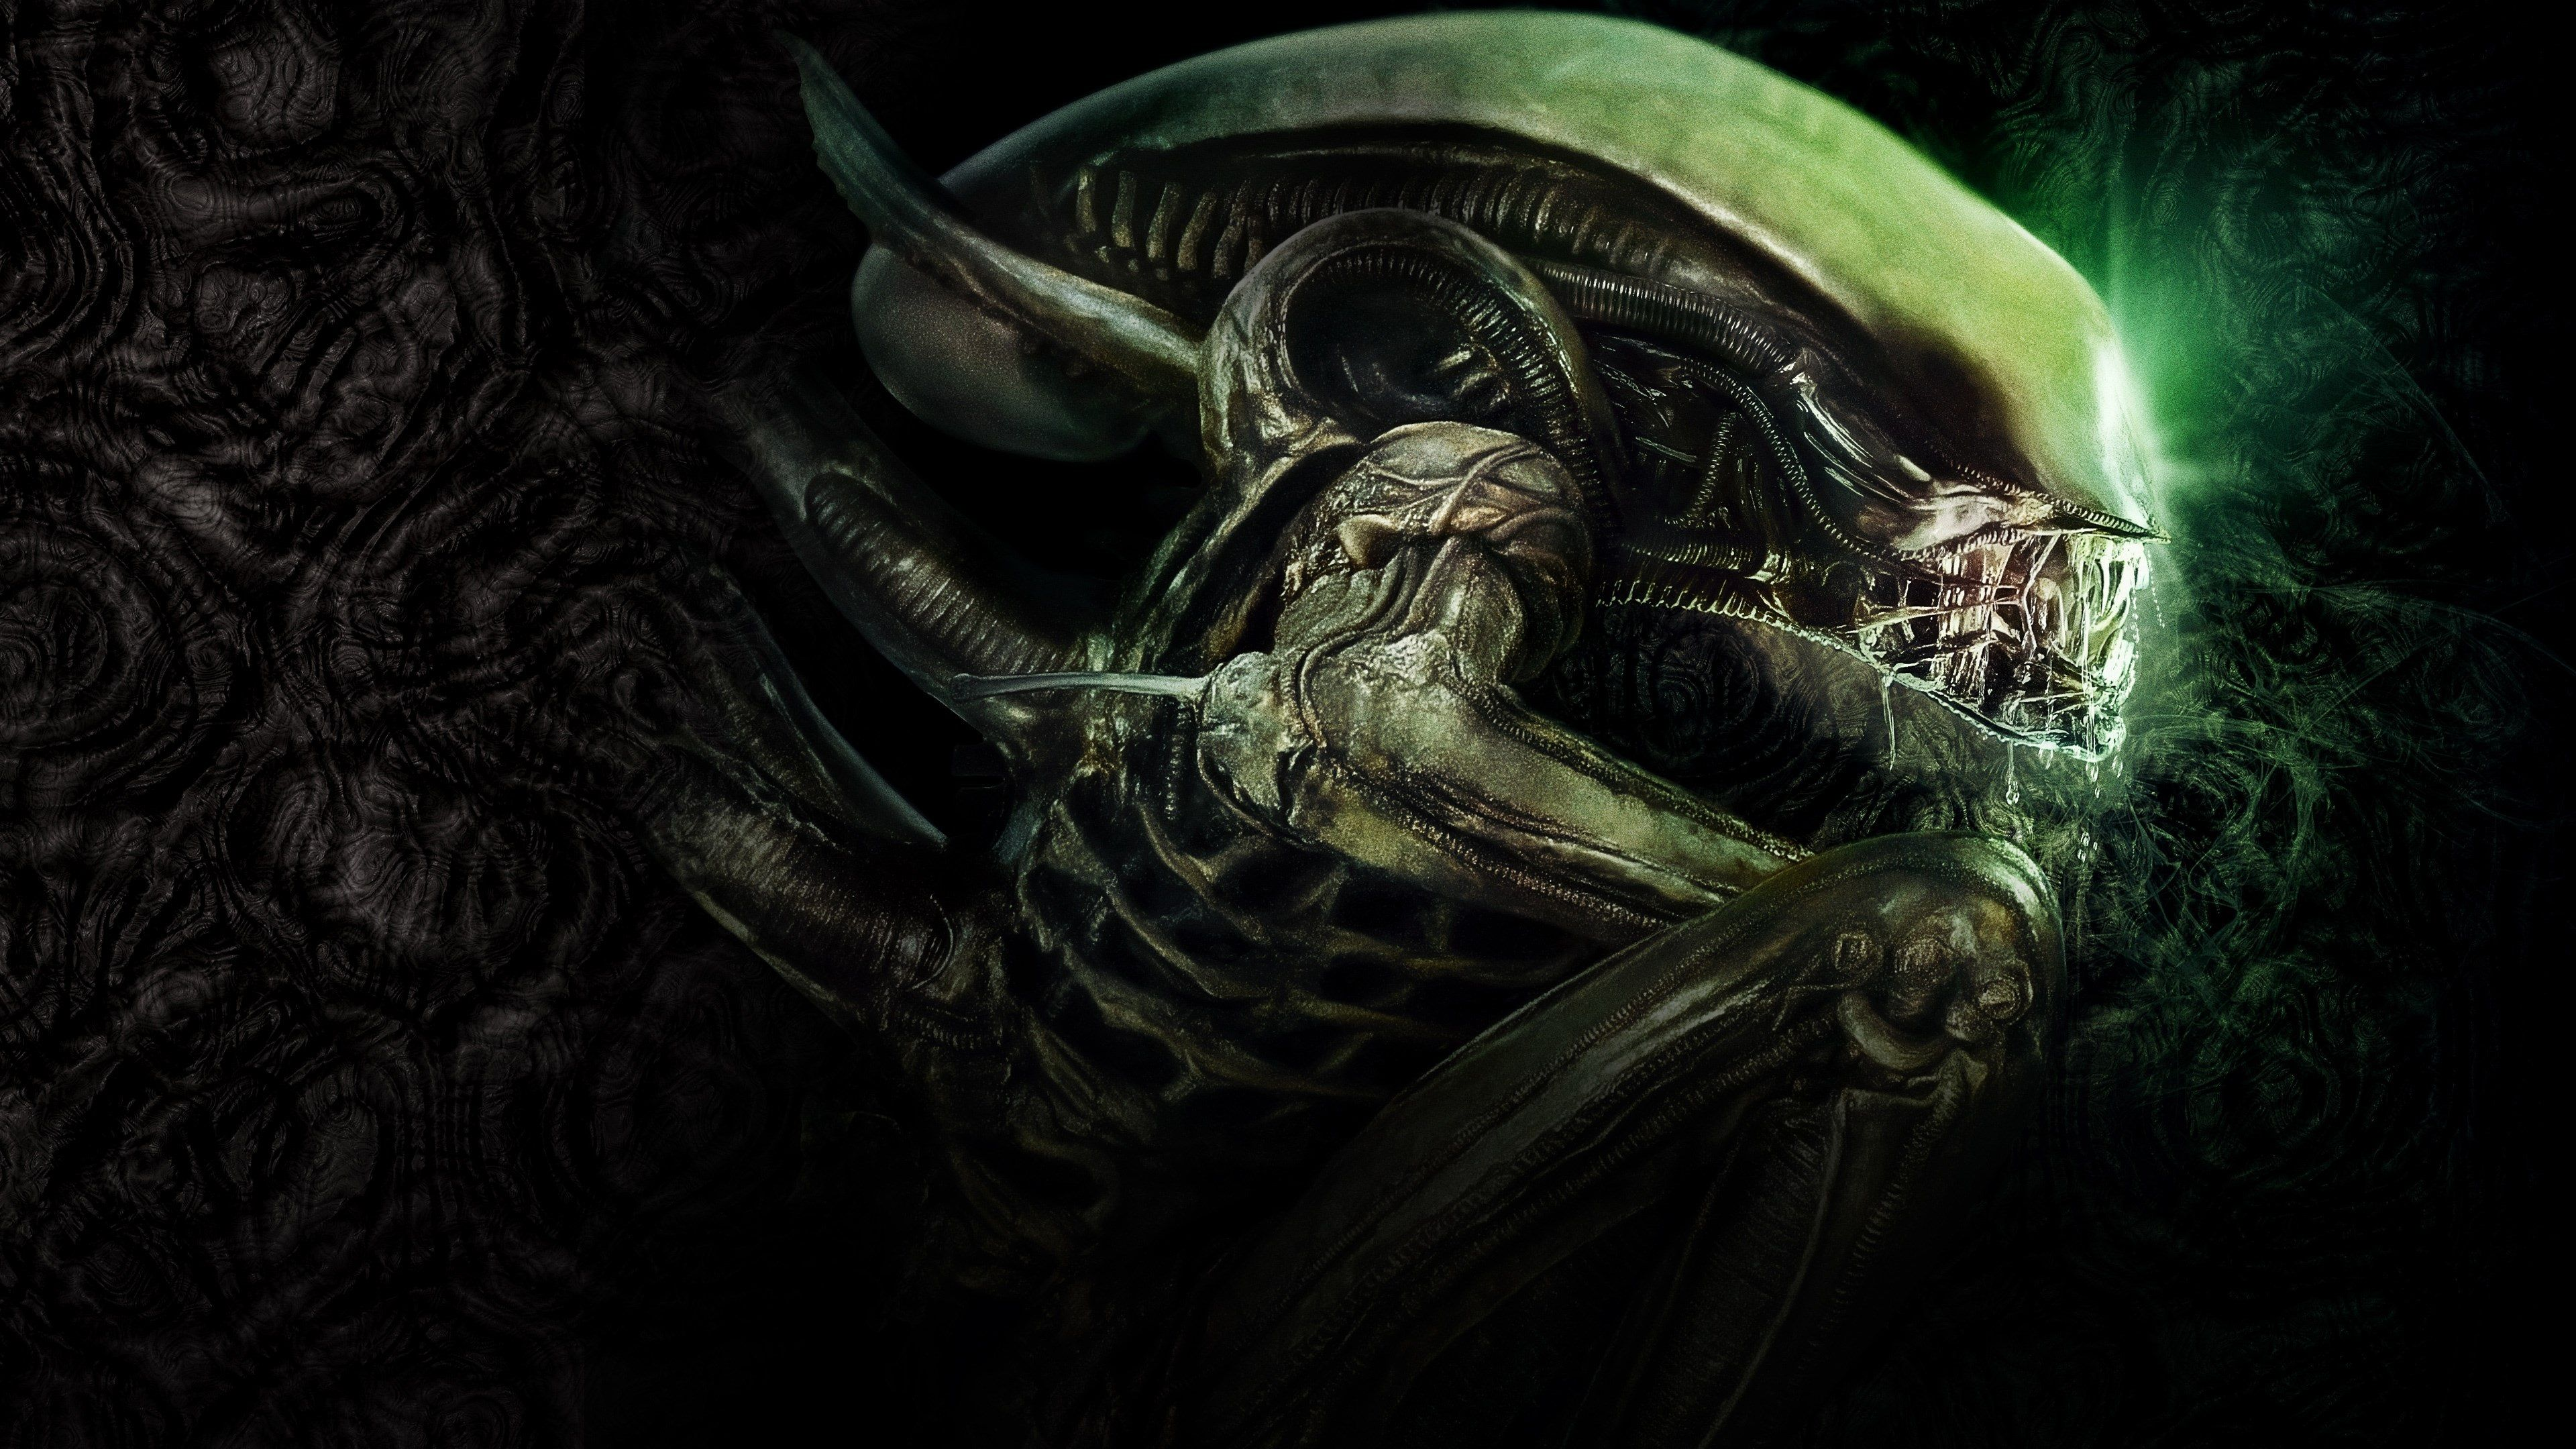 3840x2160 Alien 4k Free Picture 4k Wallpapers For Pc Wallpaper Pc 3d Wallpaper For Pc